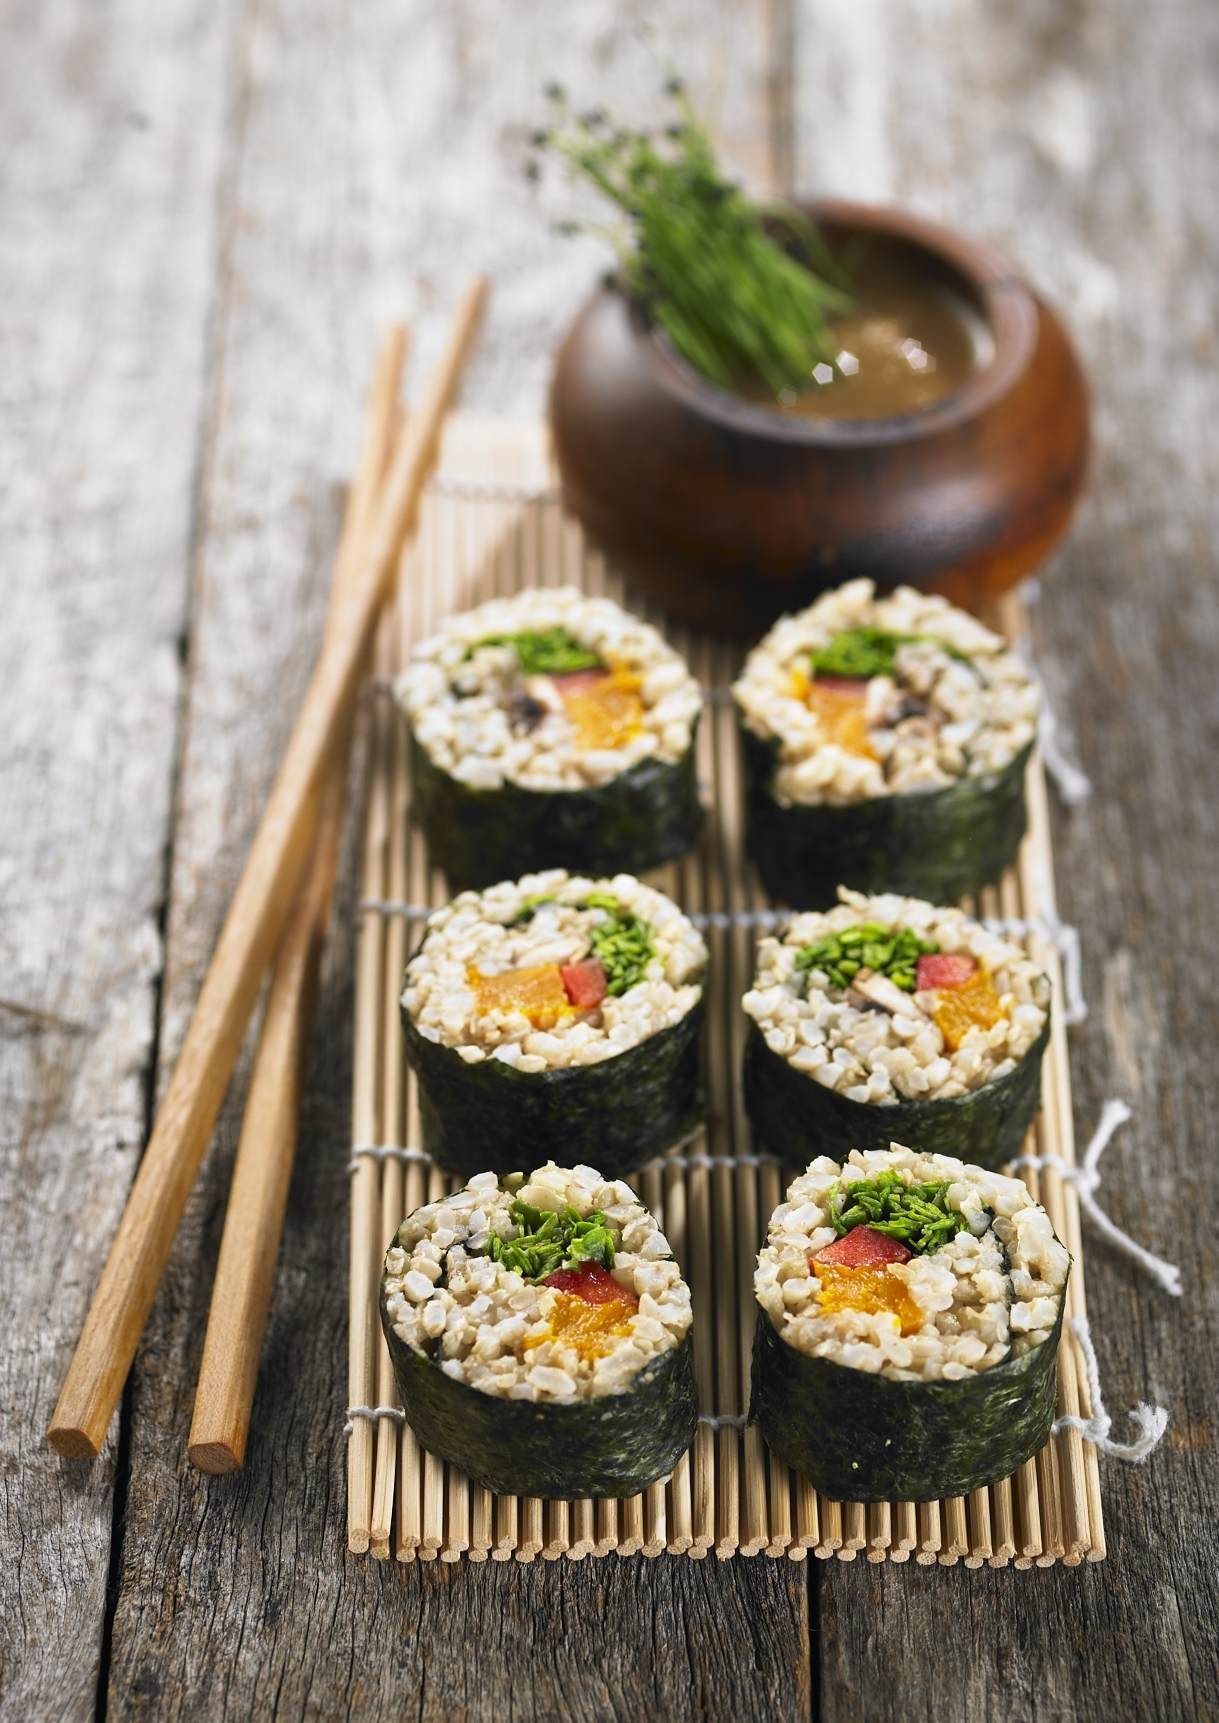 Brown Rice Sushi Nori is a made from kelp, a seaweed